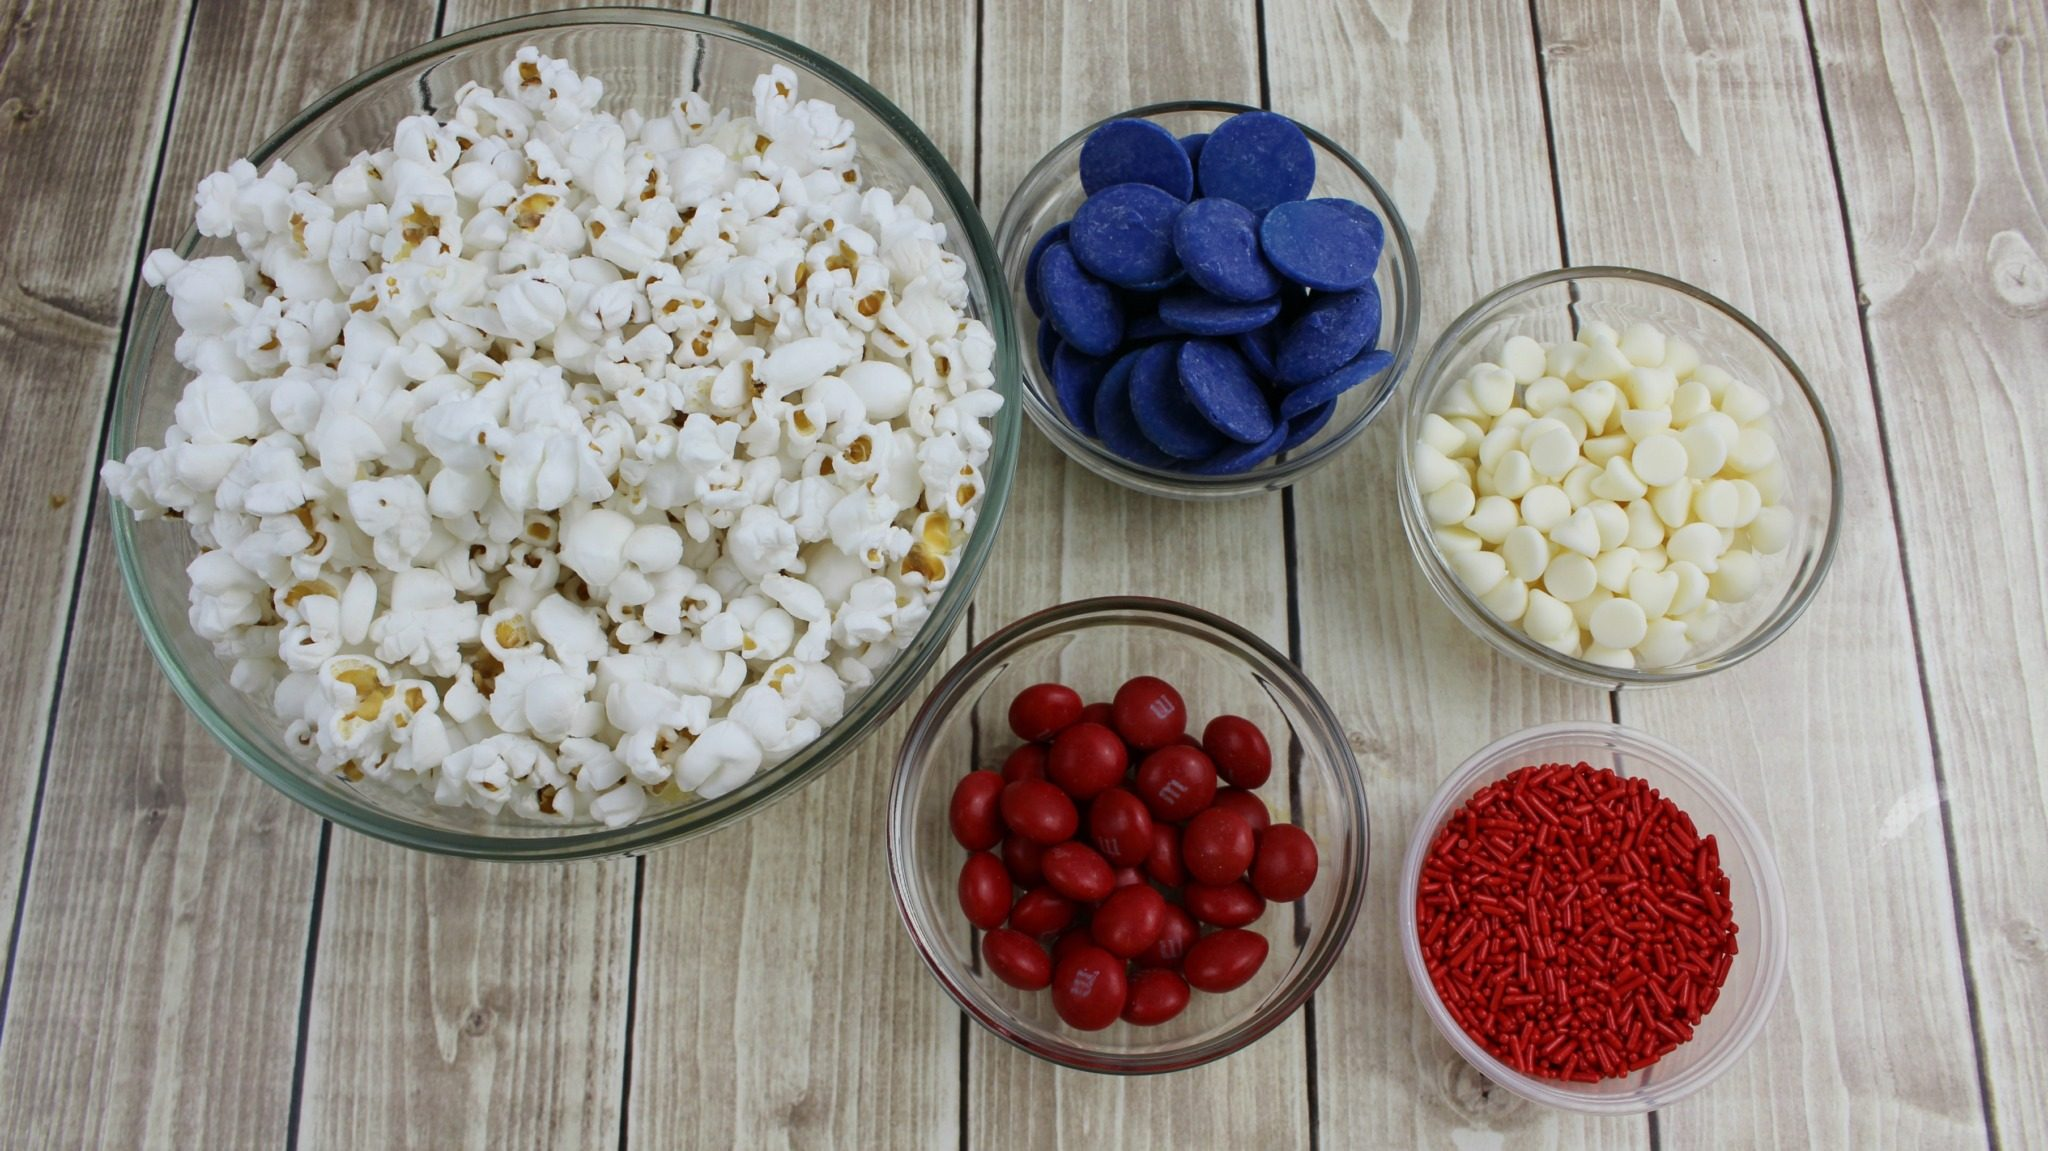 Patriotic Popcorn Ingredients